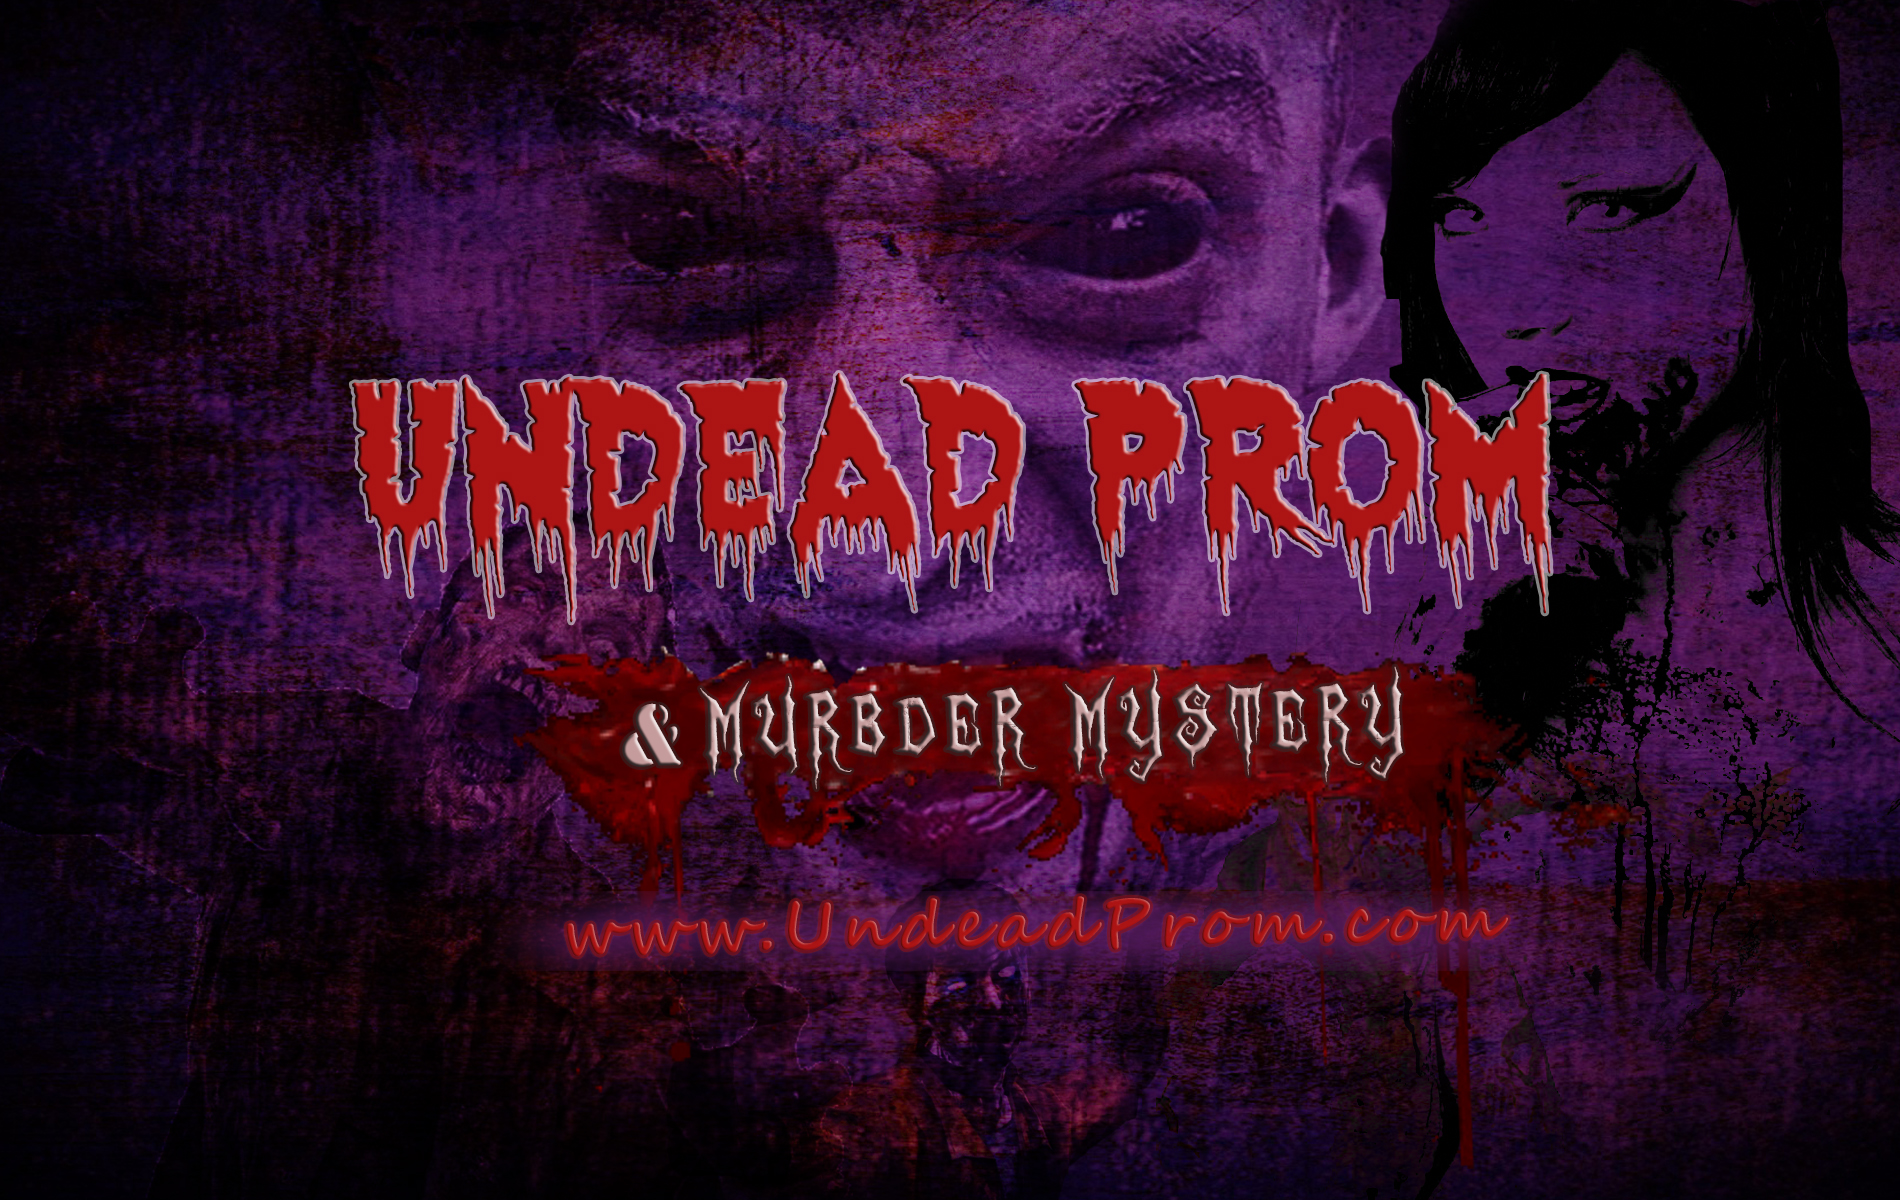 blood moon university to hold second annual undead prom & murder